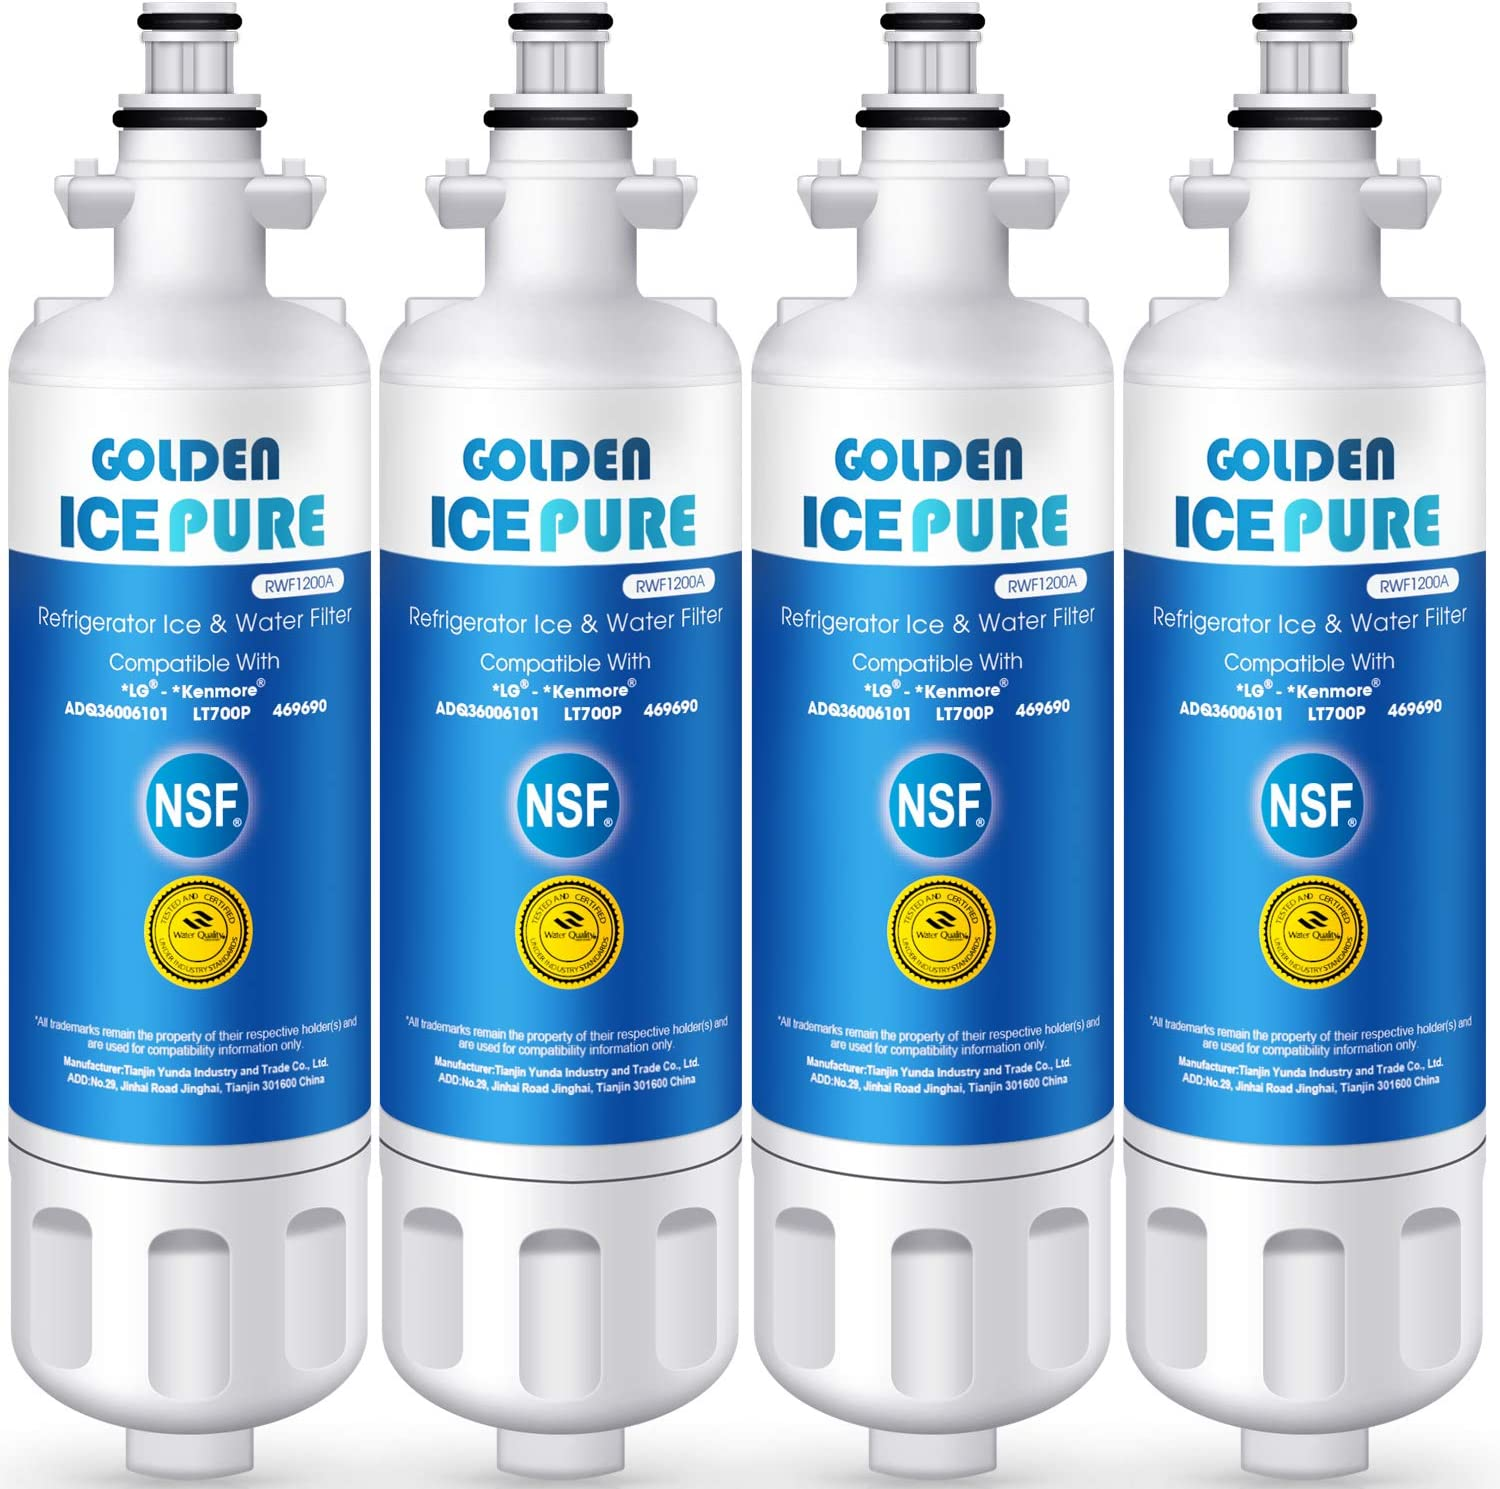 GOLDEN ICEPURE ADQ36006101 Refrigerator Water Filter Replacement for LG LT700P, ADQ36006101, Kenmore 469690, 9690, ADQ36006102, Advanced, Pack of 4